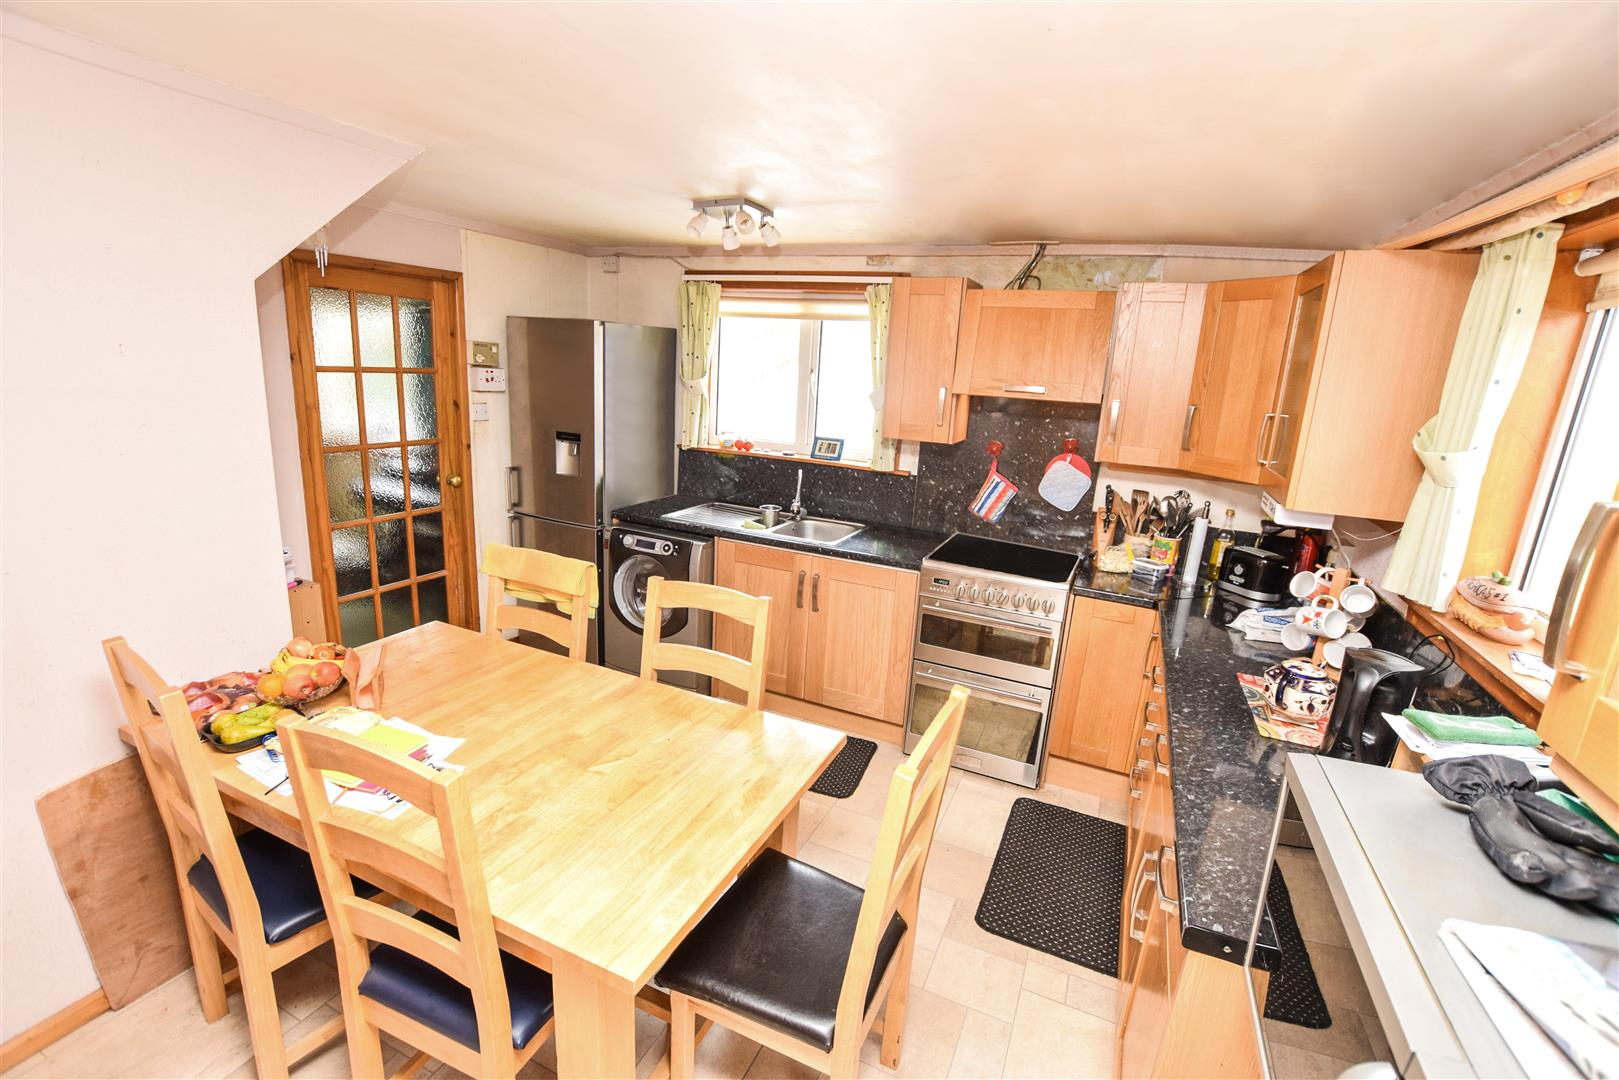 11, Darach Road, Pitlochry, Perthshire, PH16 5HR, UK